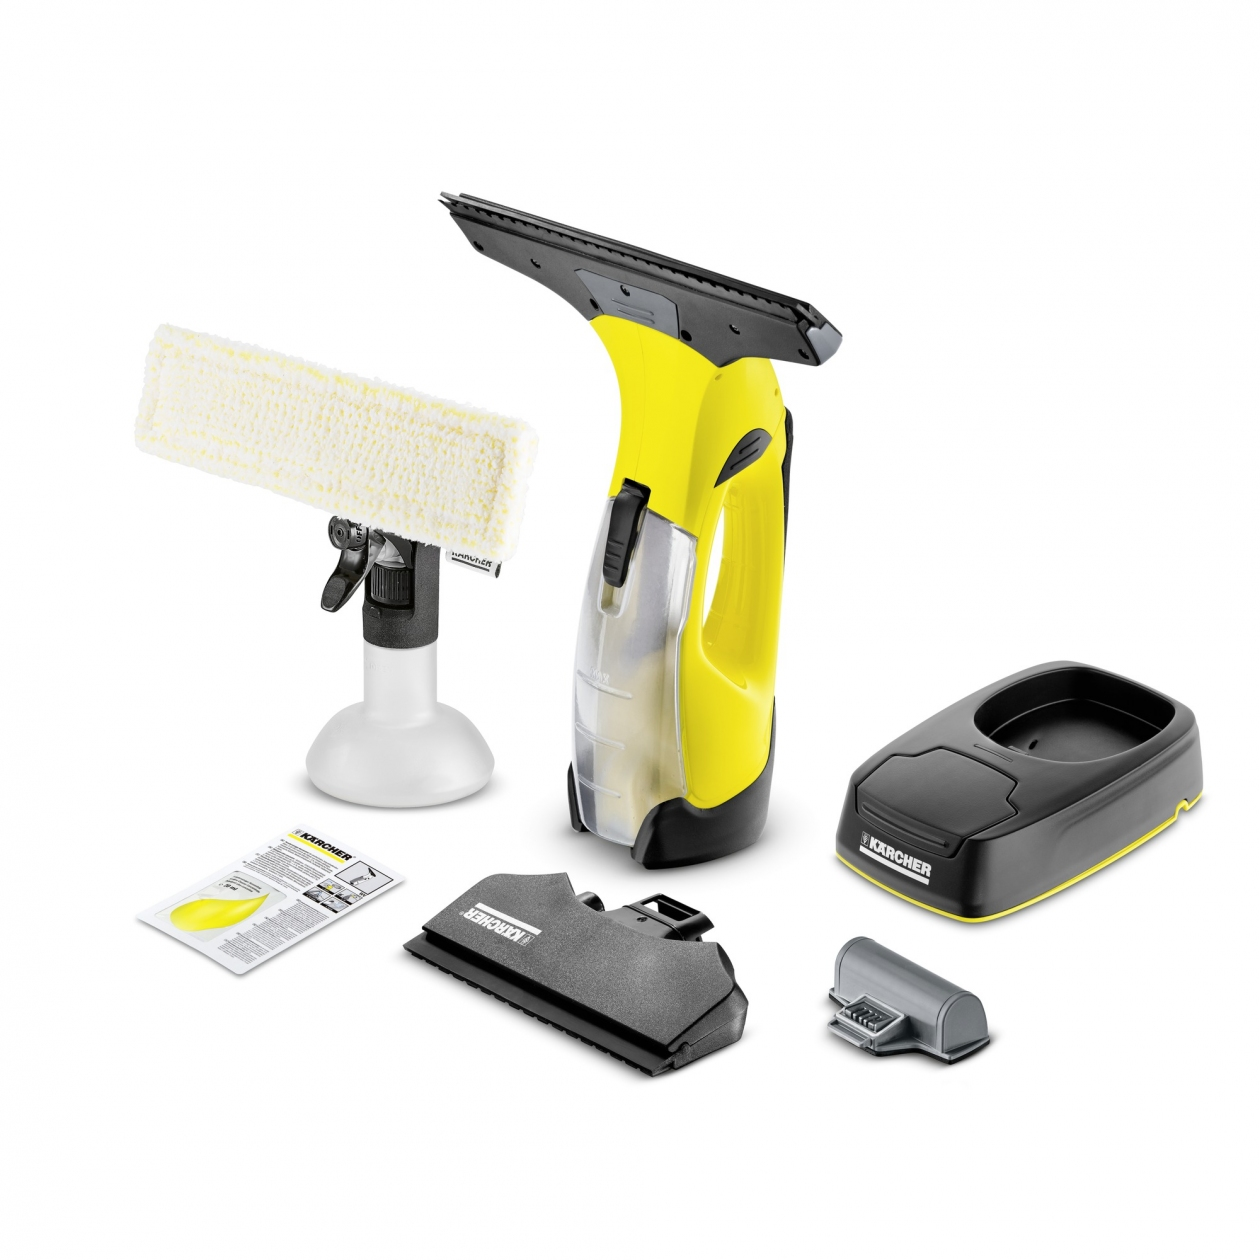 KARCHER WV 5 PREMIUM NON STOP CLEANING KIT 16334470